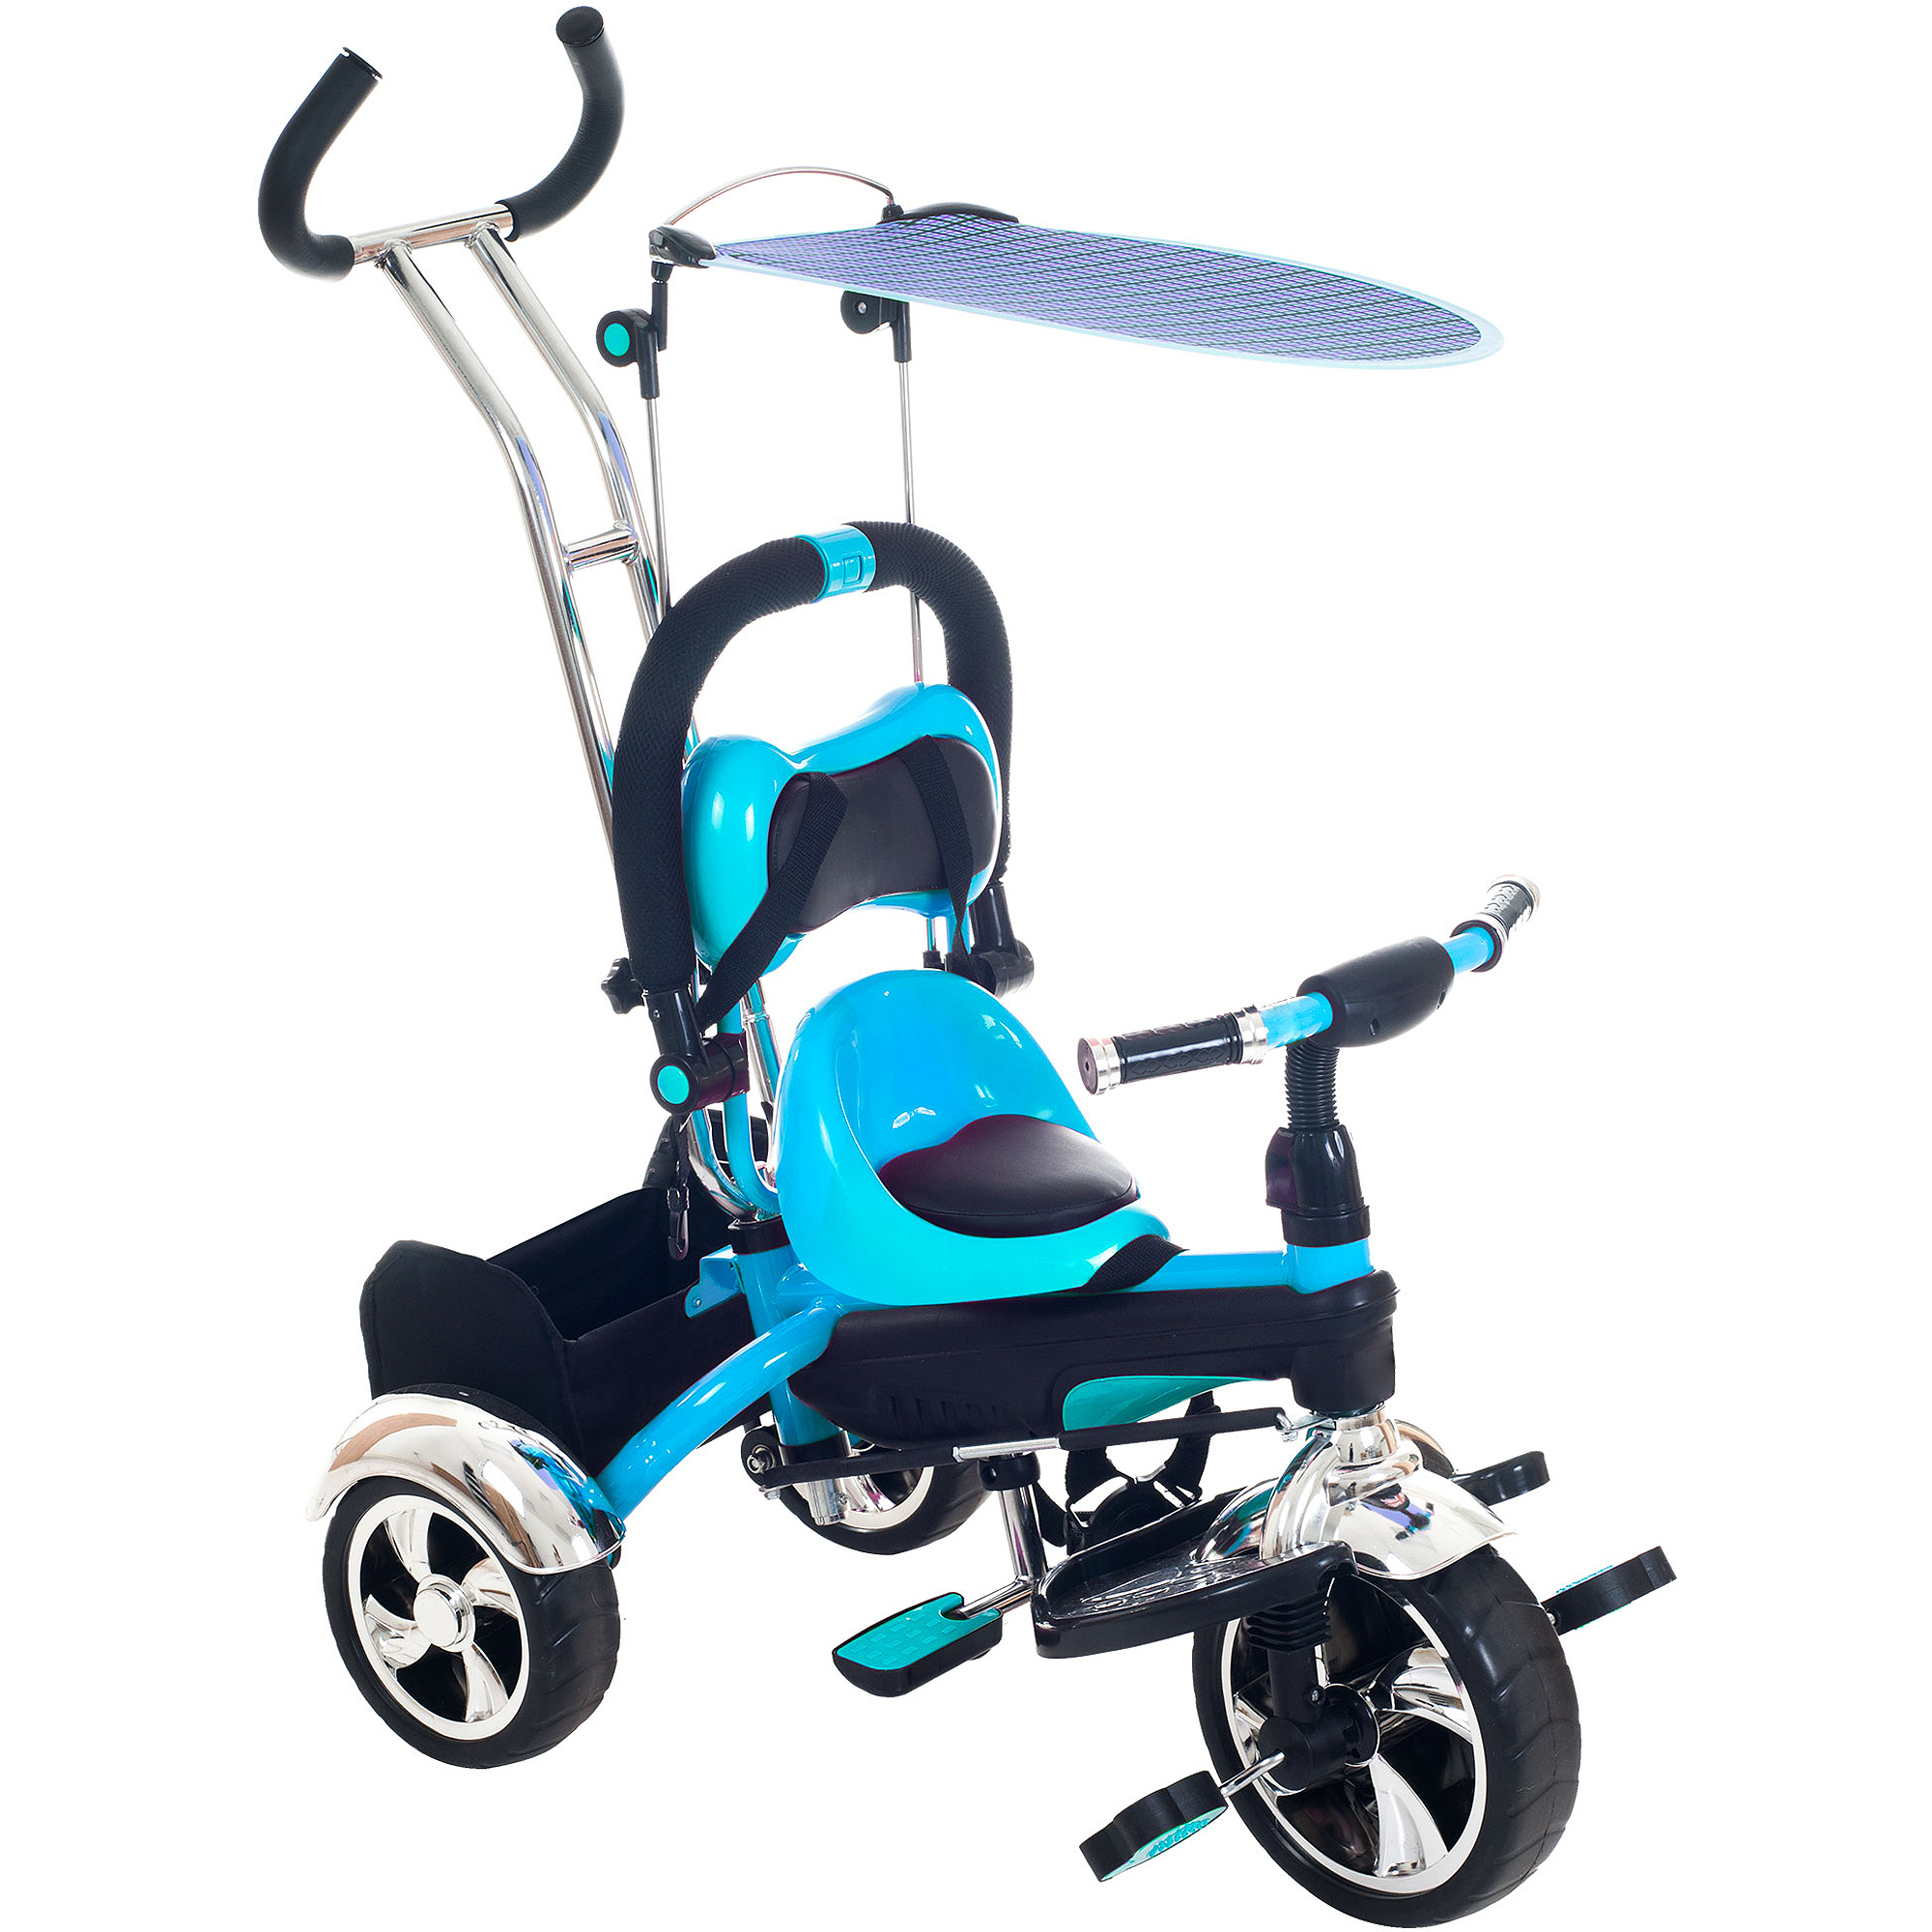 Tricycle Stroller Bike 3-1 Stroller with Removable Canopy and Stroller Organizer by Lil  sc 1 st  Walmart & Tricycle Stroller Bike 3-1 Stroller with Removable Canopy and ...